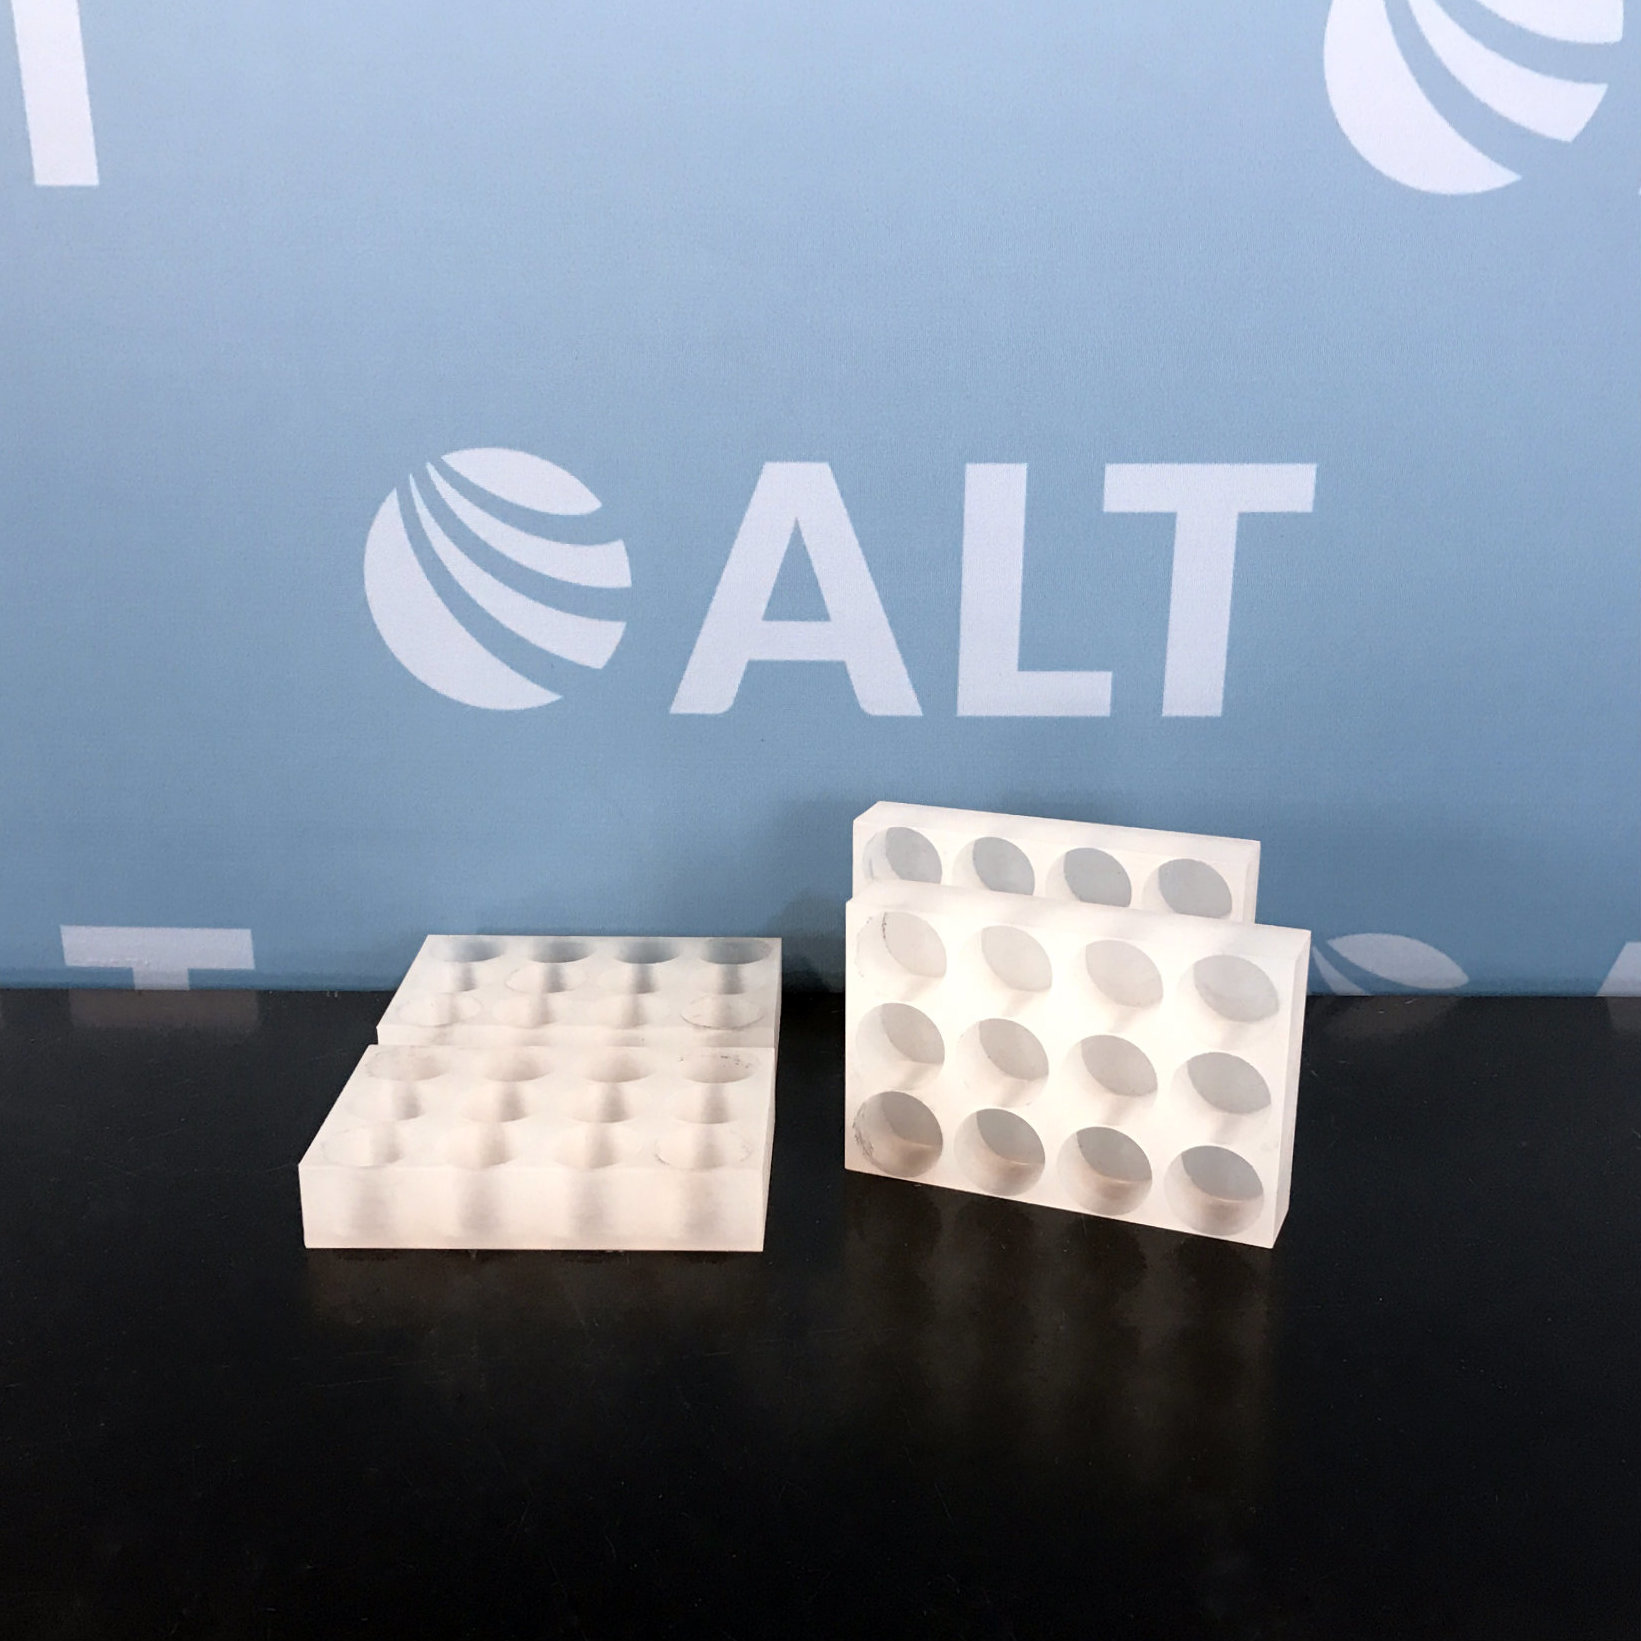 Thermo / Savant RBA12-27-60 Polypropylene Rotor Blocks Image